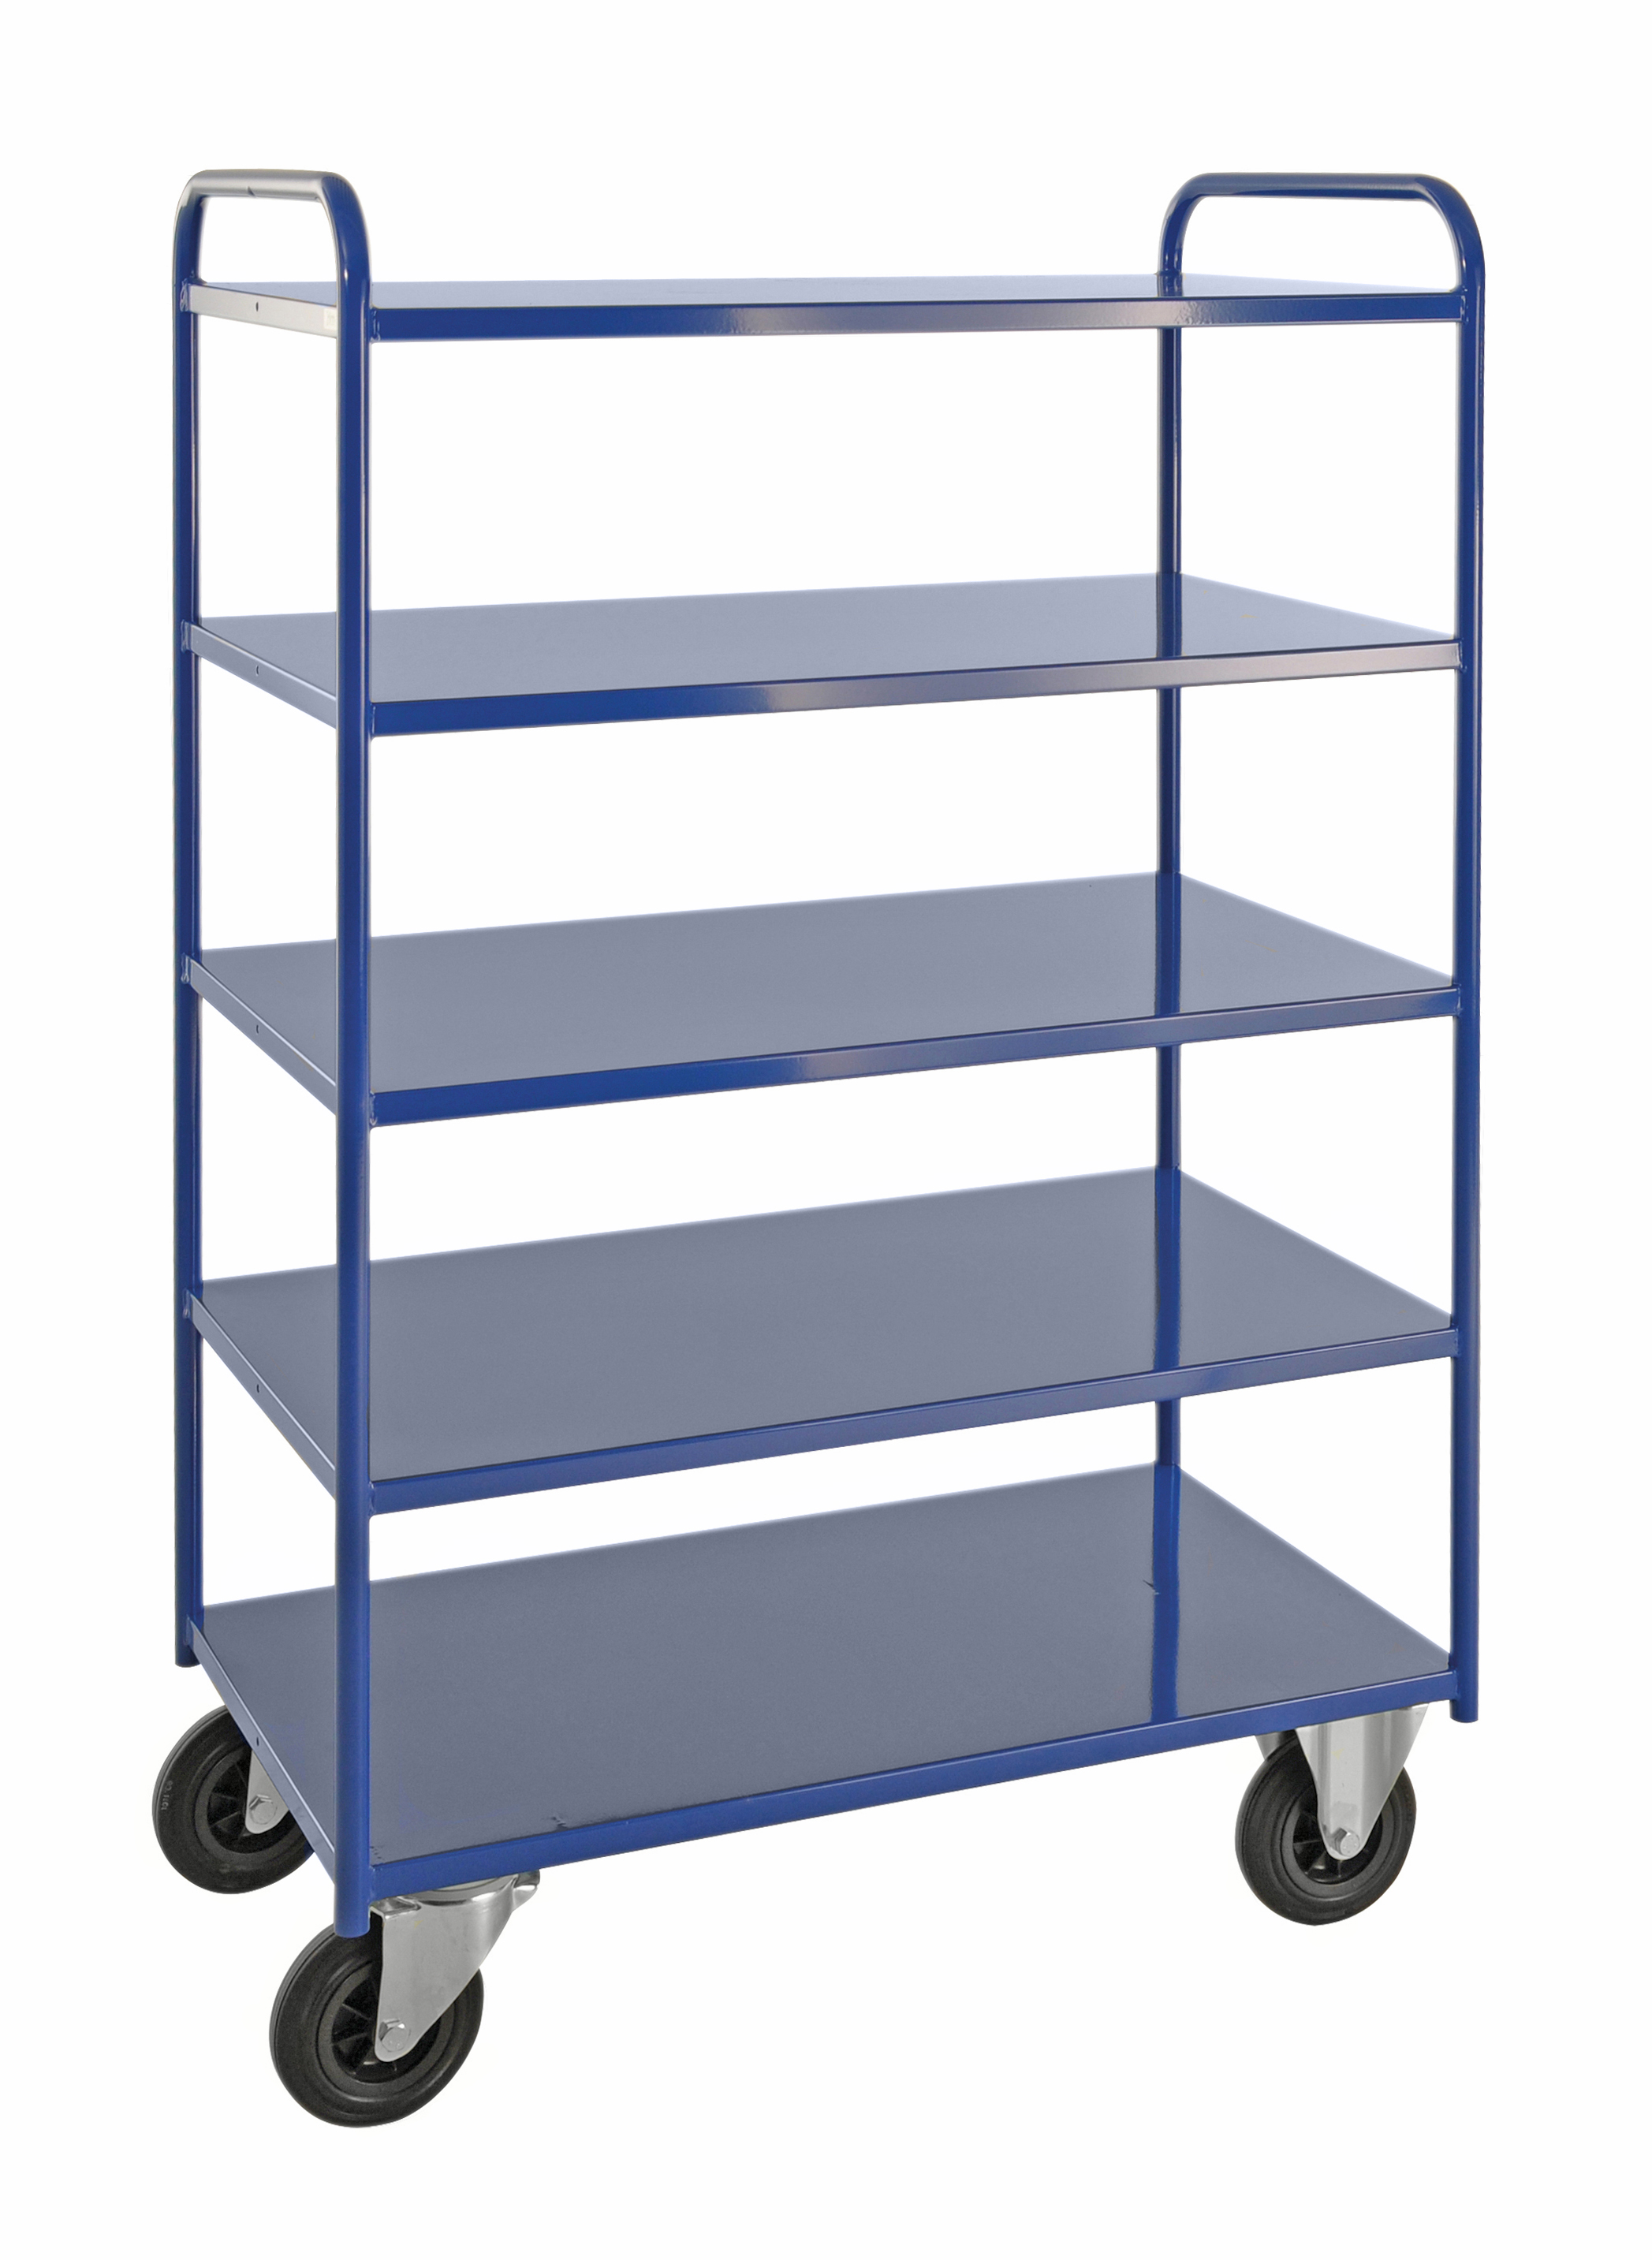 Shelf trolley 5 levels, fully welded KM4145-B